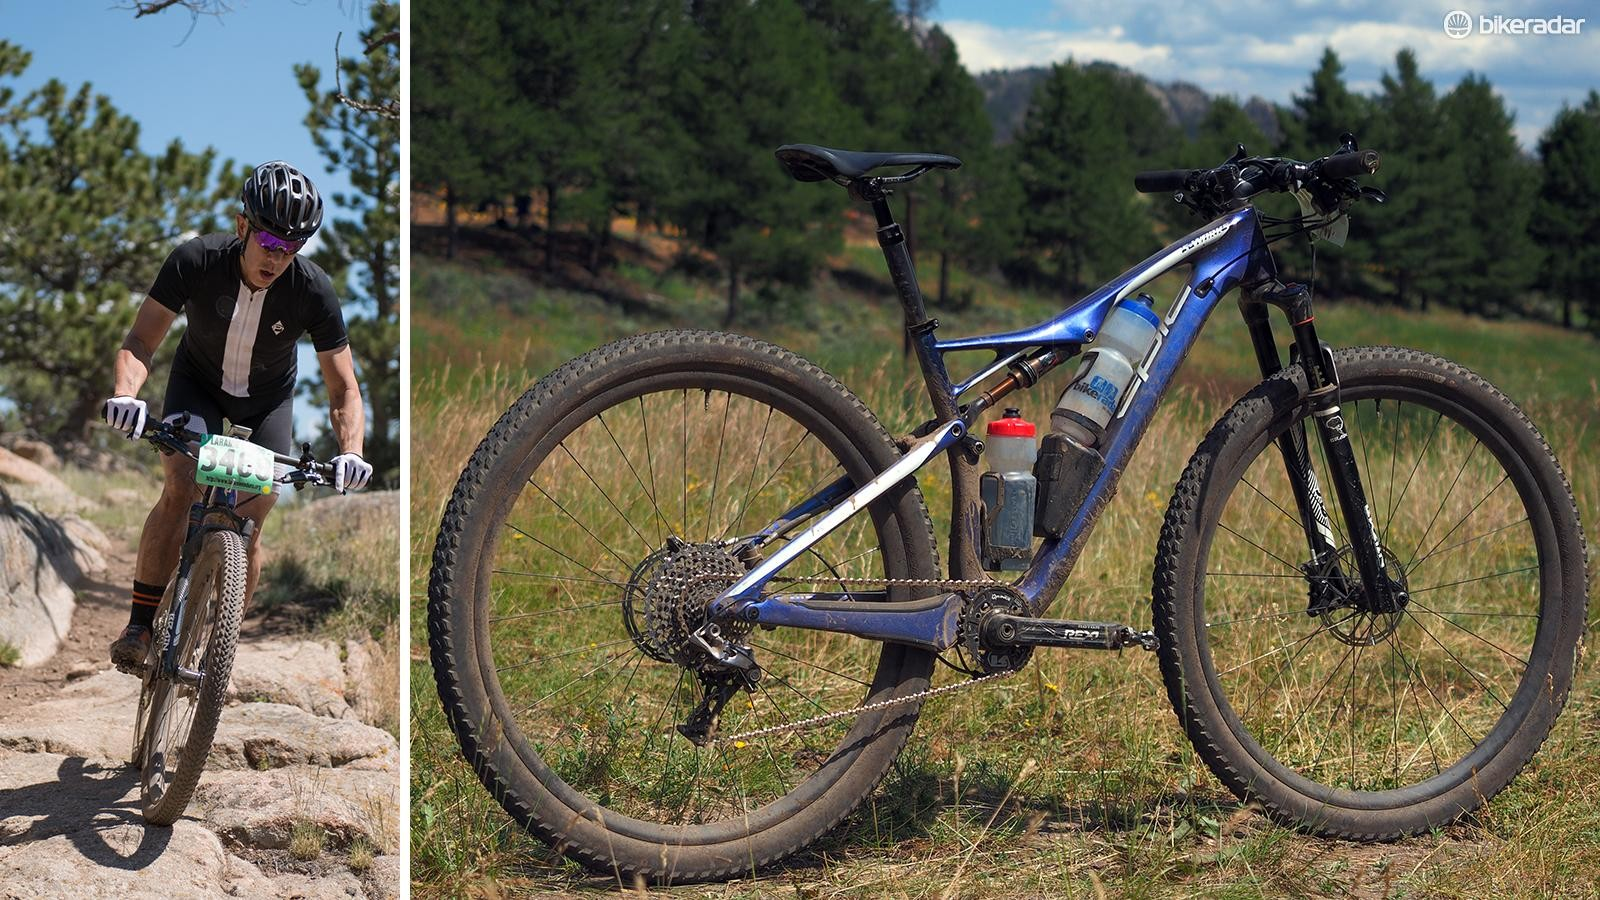 The Specialized S-Works Epic World Cup is purpose-built for shorter and more intense XC-style events but with a few key modifications, it can work very well for marathon-style races, too